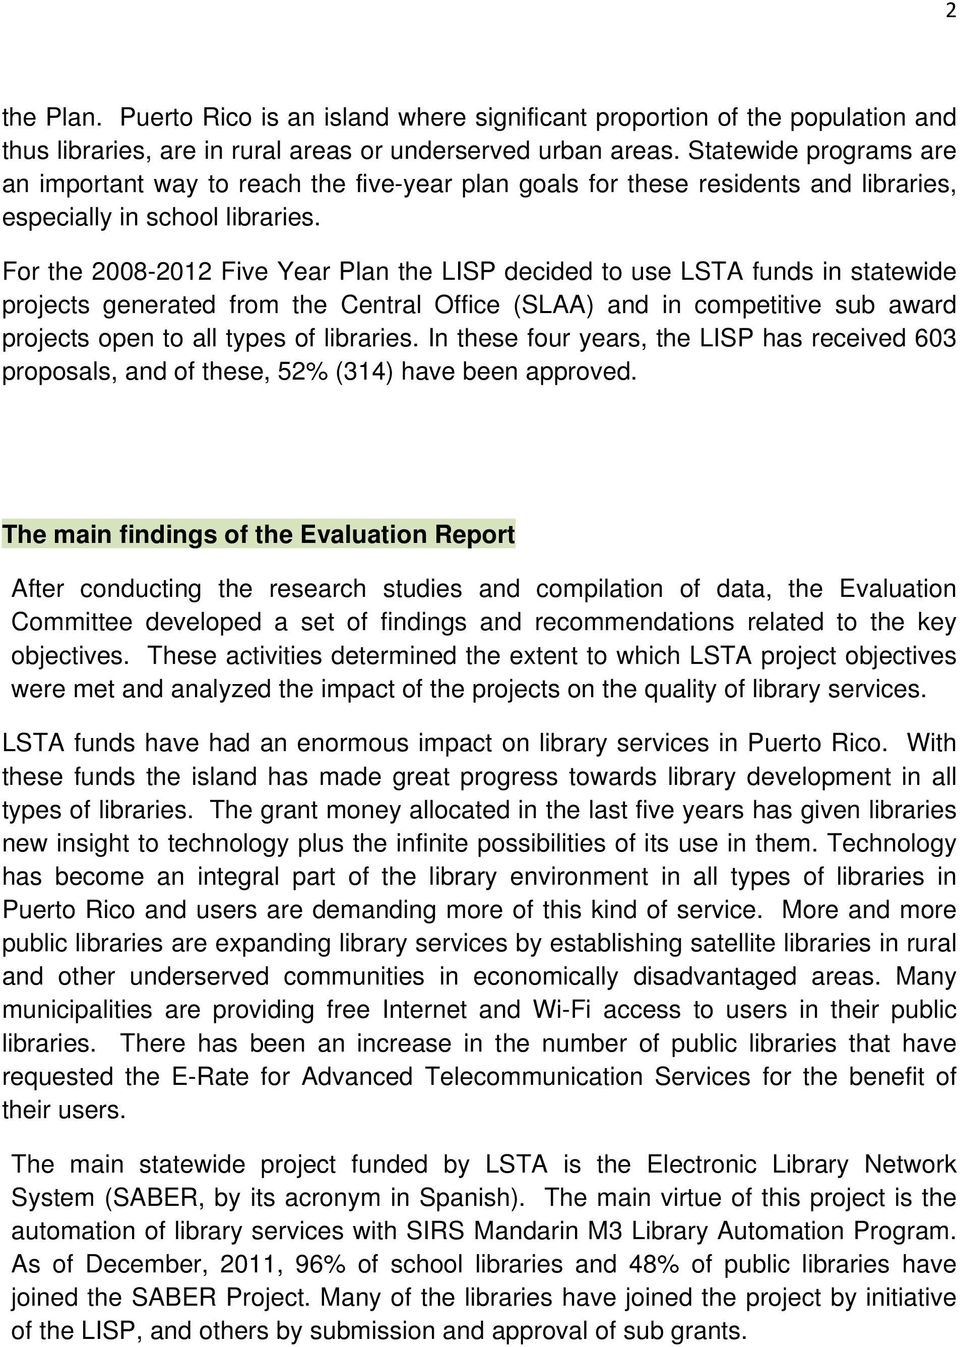 For the 2008-2012 Five Year Plan the LISP decided to use LSTA funds in statewide projects generated from the Central Office (SLAA) and in competitive sub award projects open to all types of libraries.